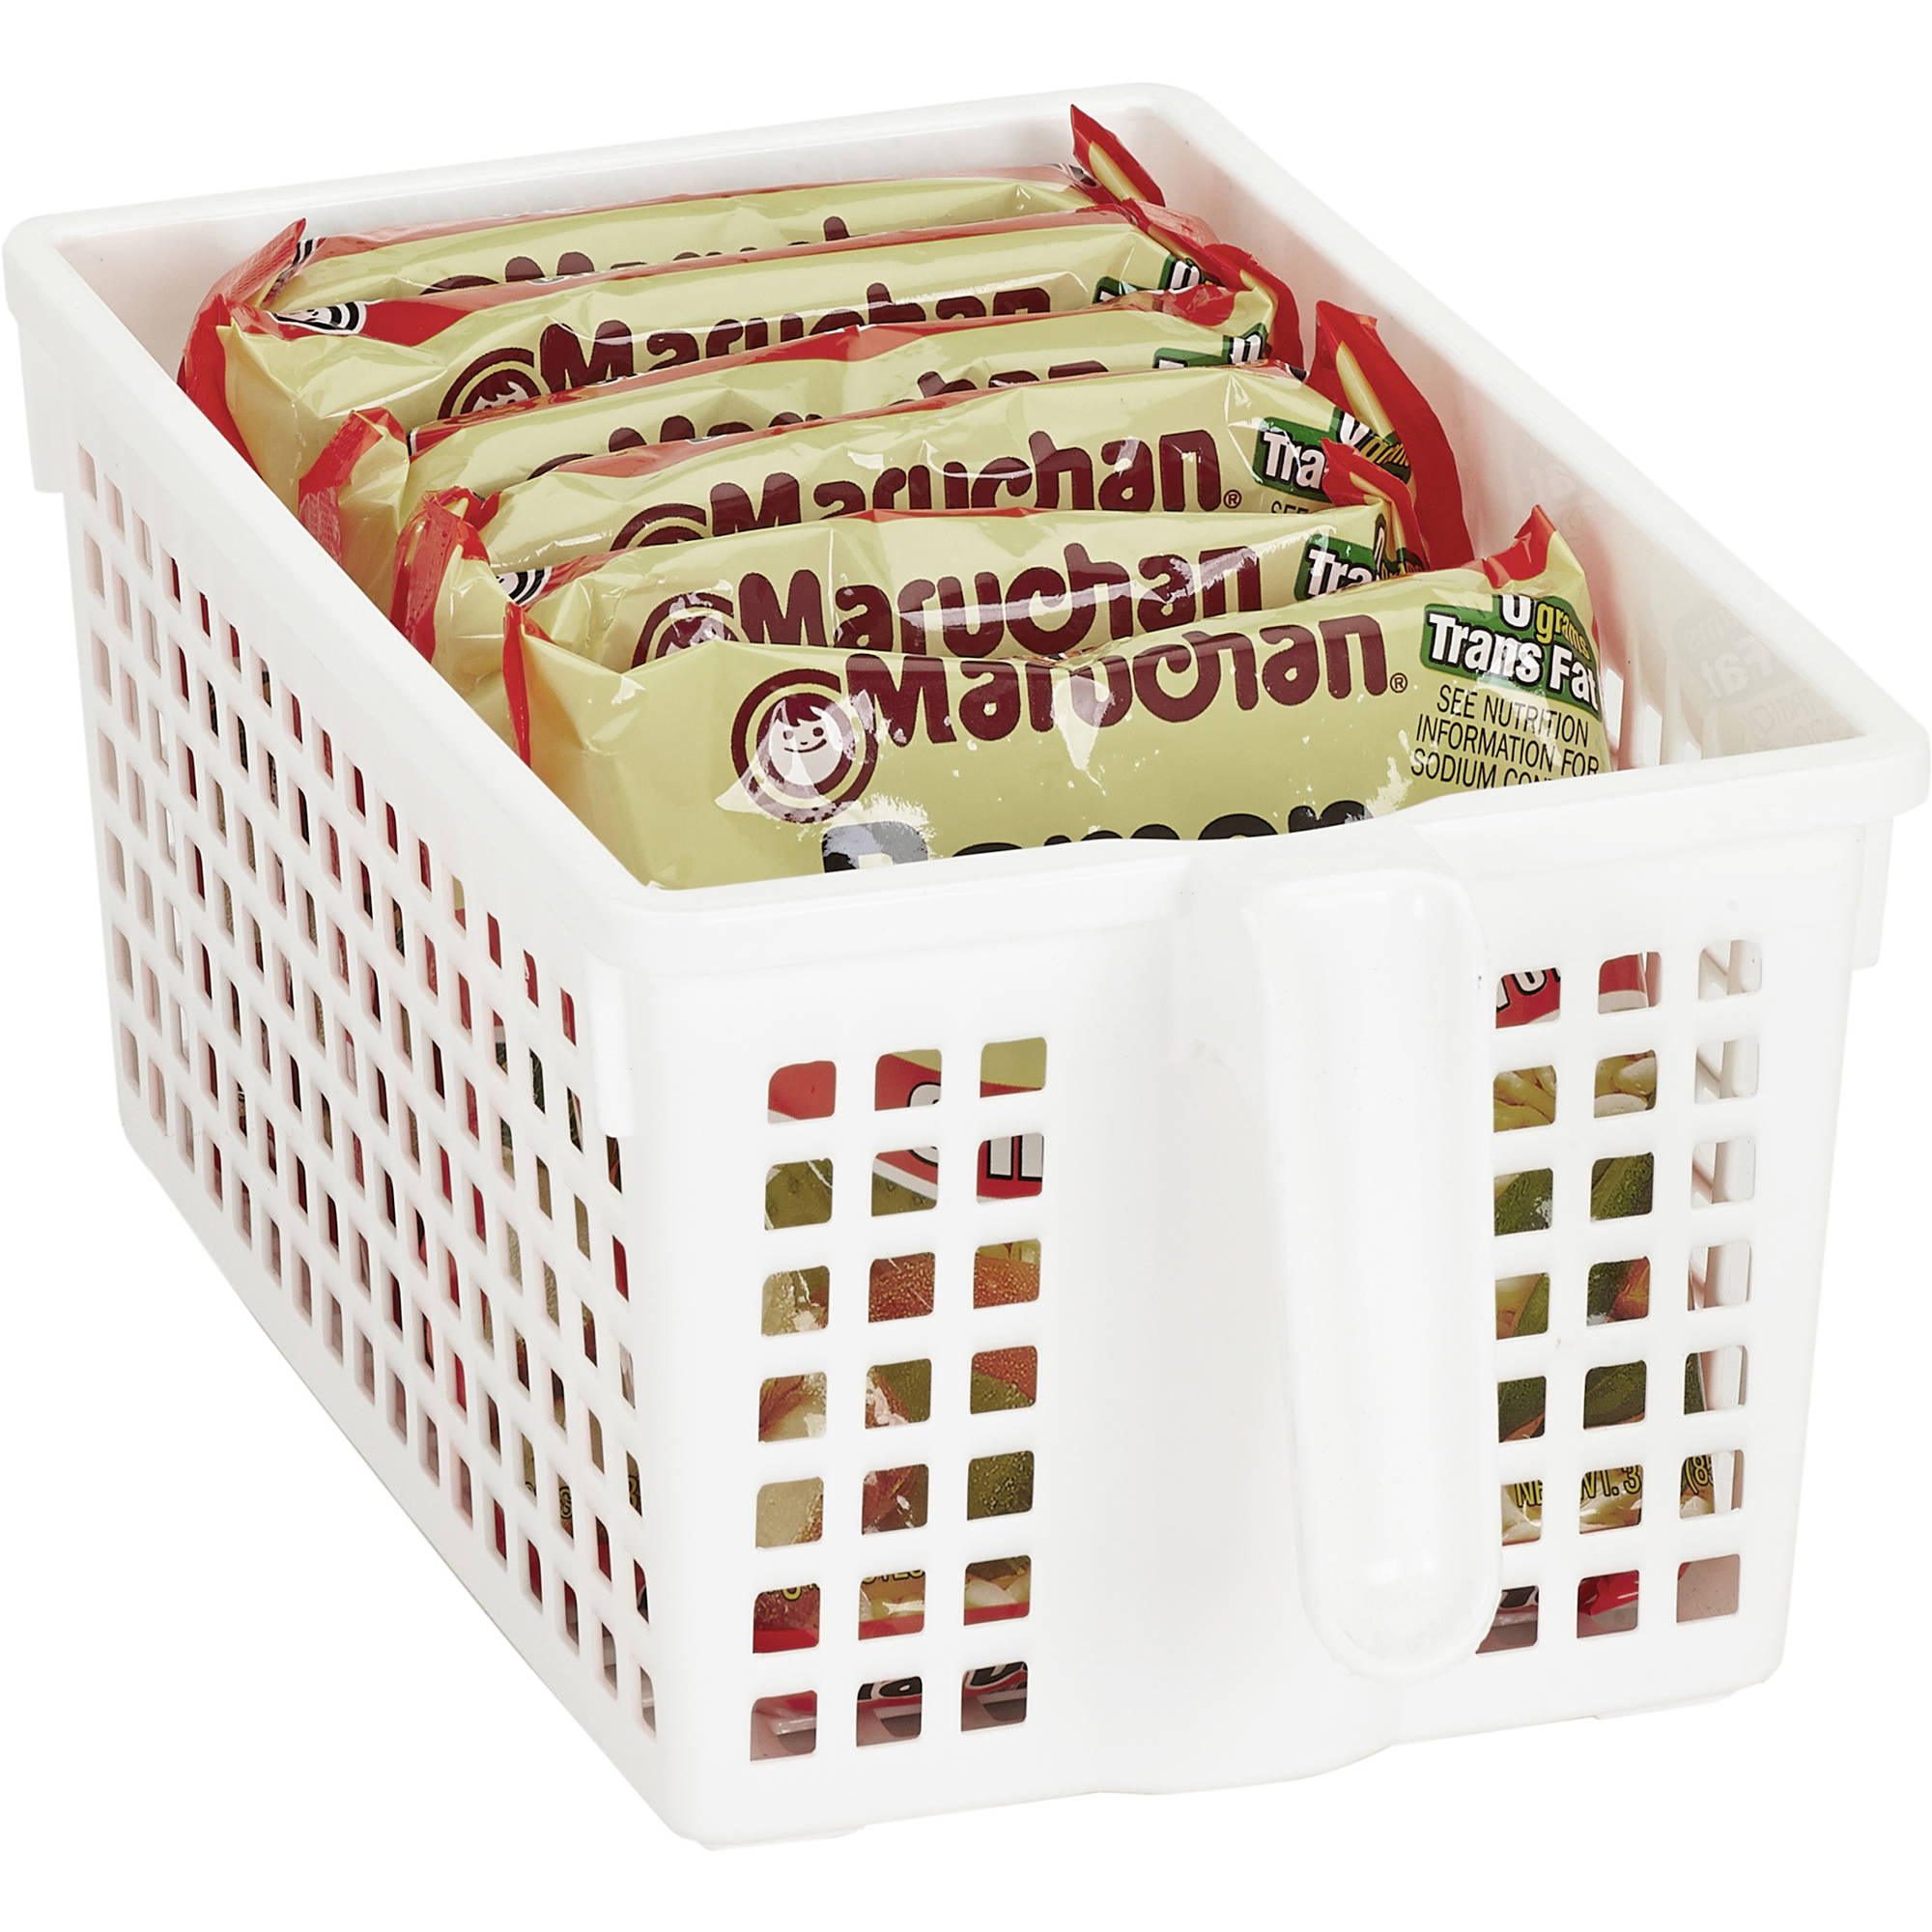 "Kitchen Details Easy Pull Pantry Organizer Basket with Handle Grip, 11"" L x 6.25"" W x 4.35"" D"